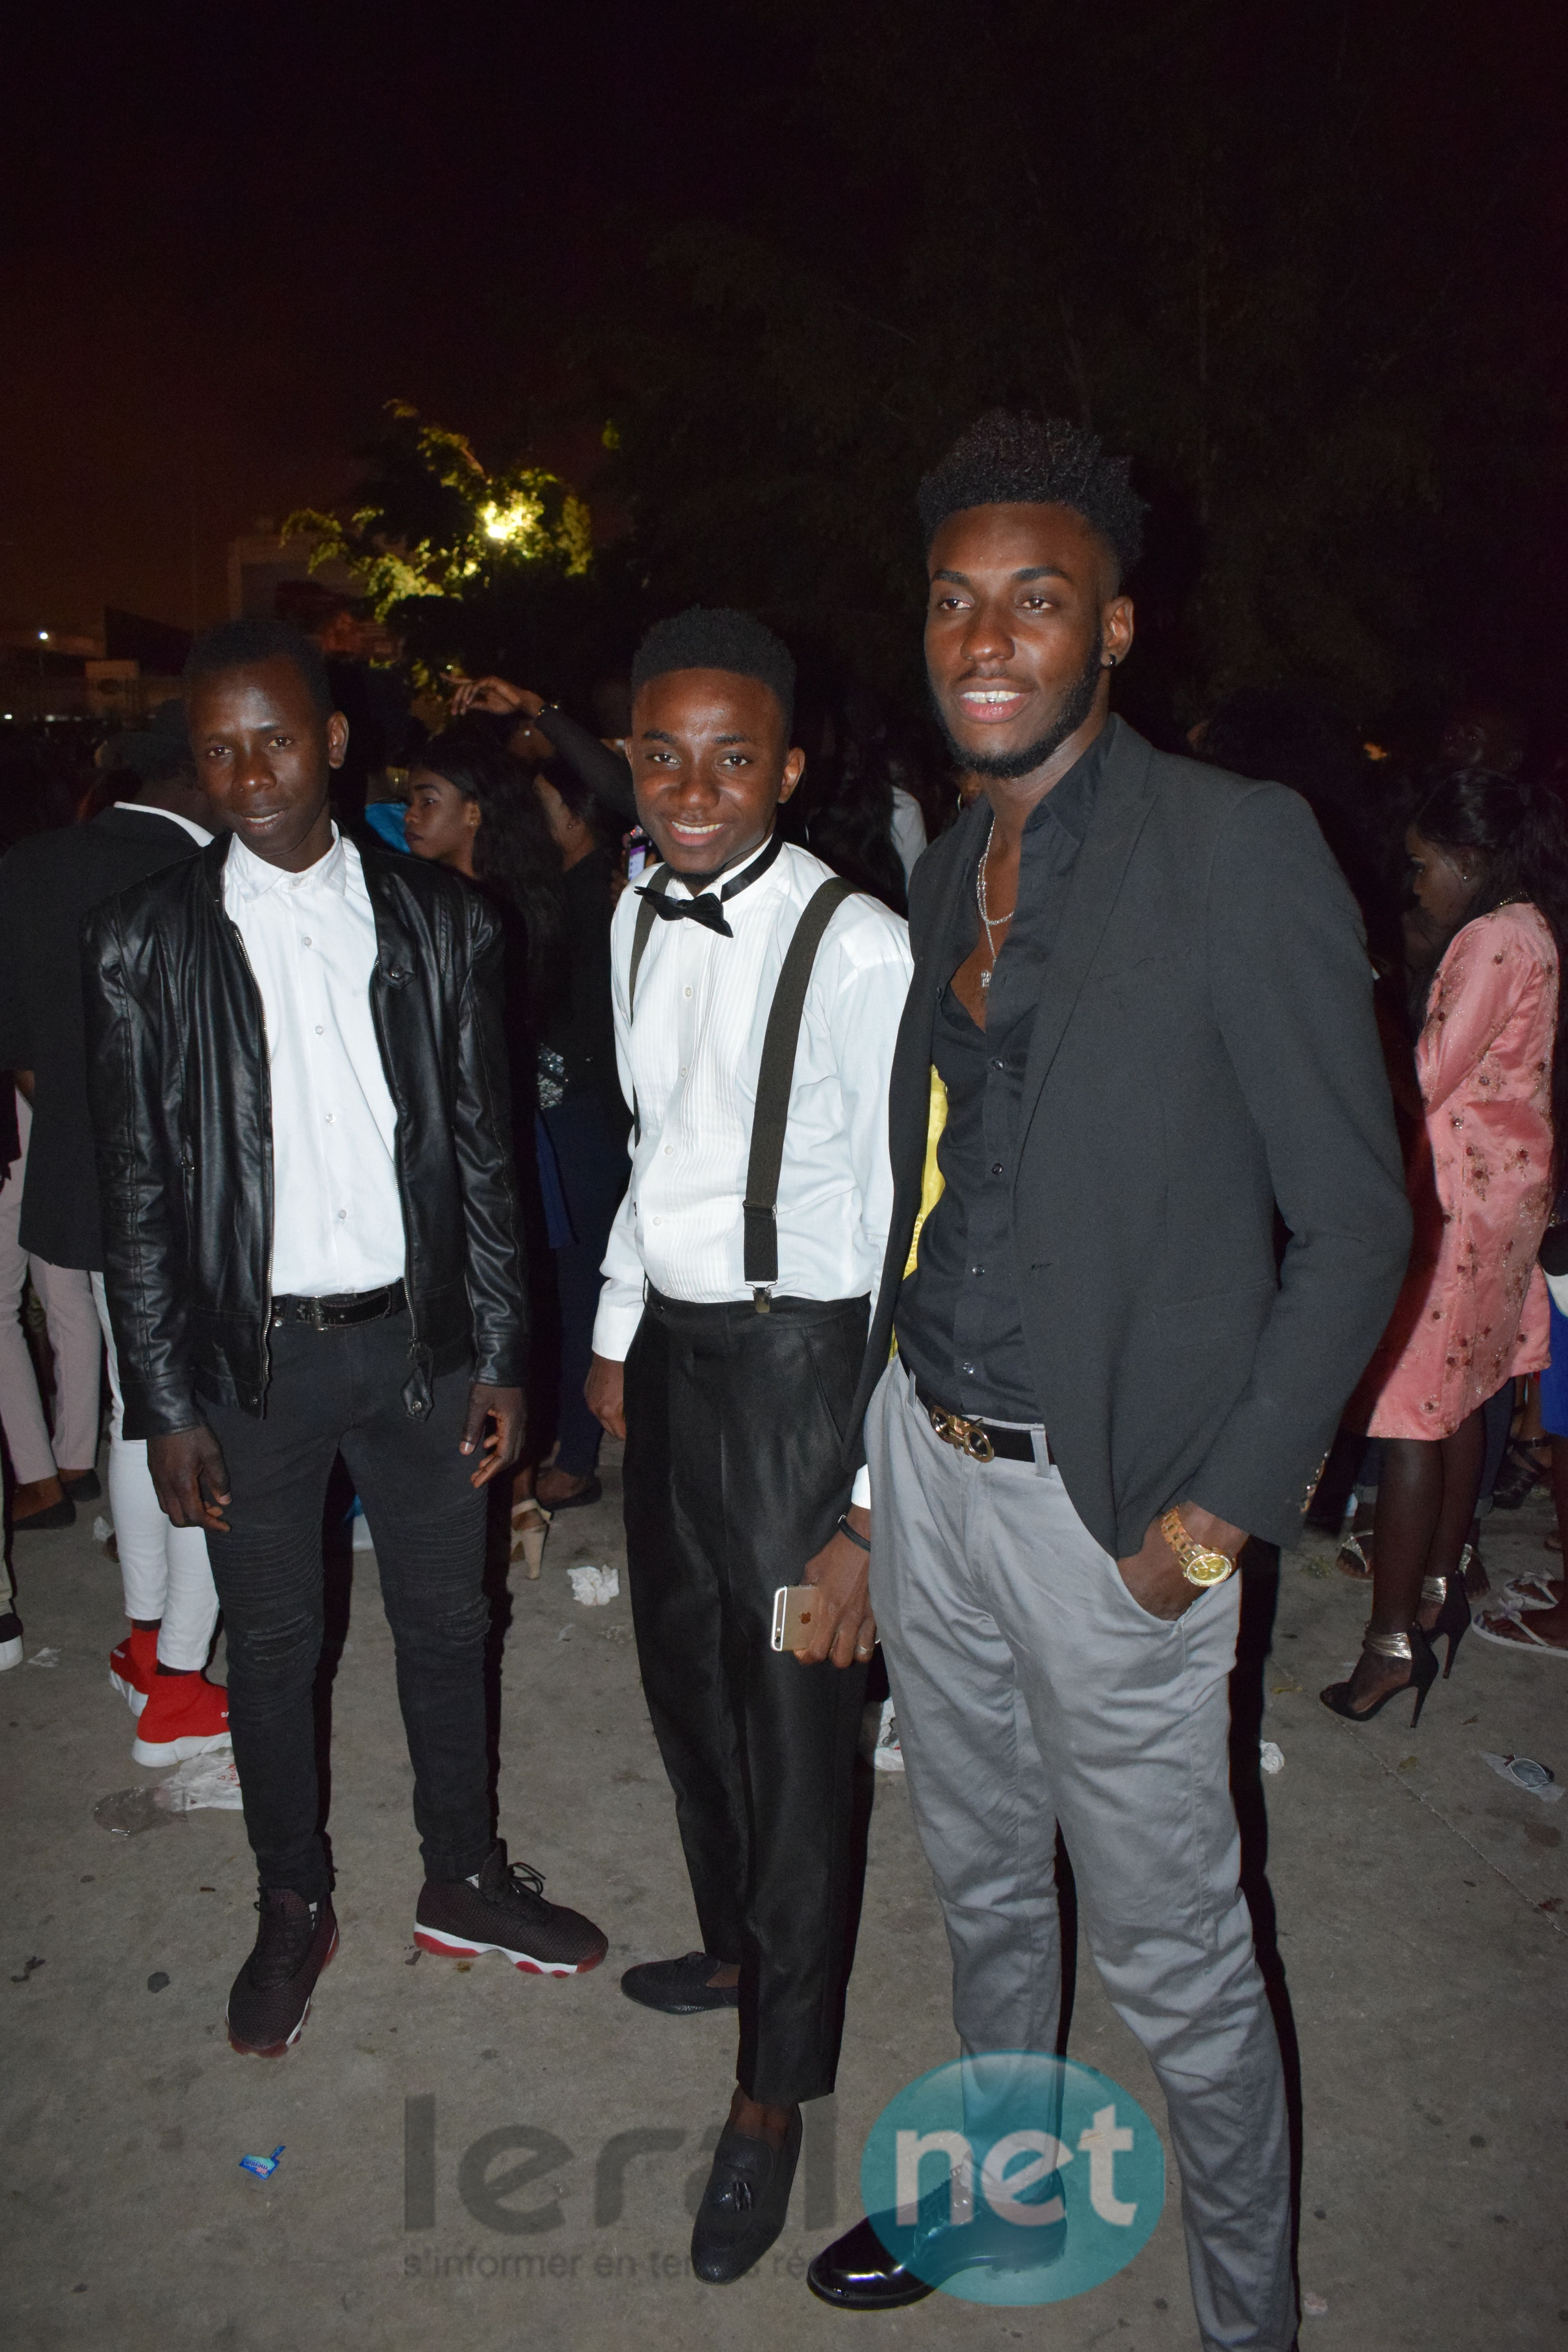 (En direct sur leral ) Les images exclusives de la Soirée de Waly Ballago Seck